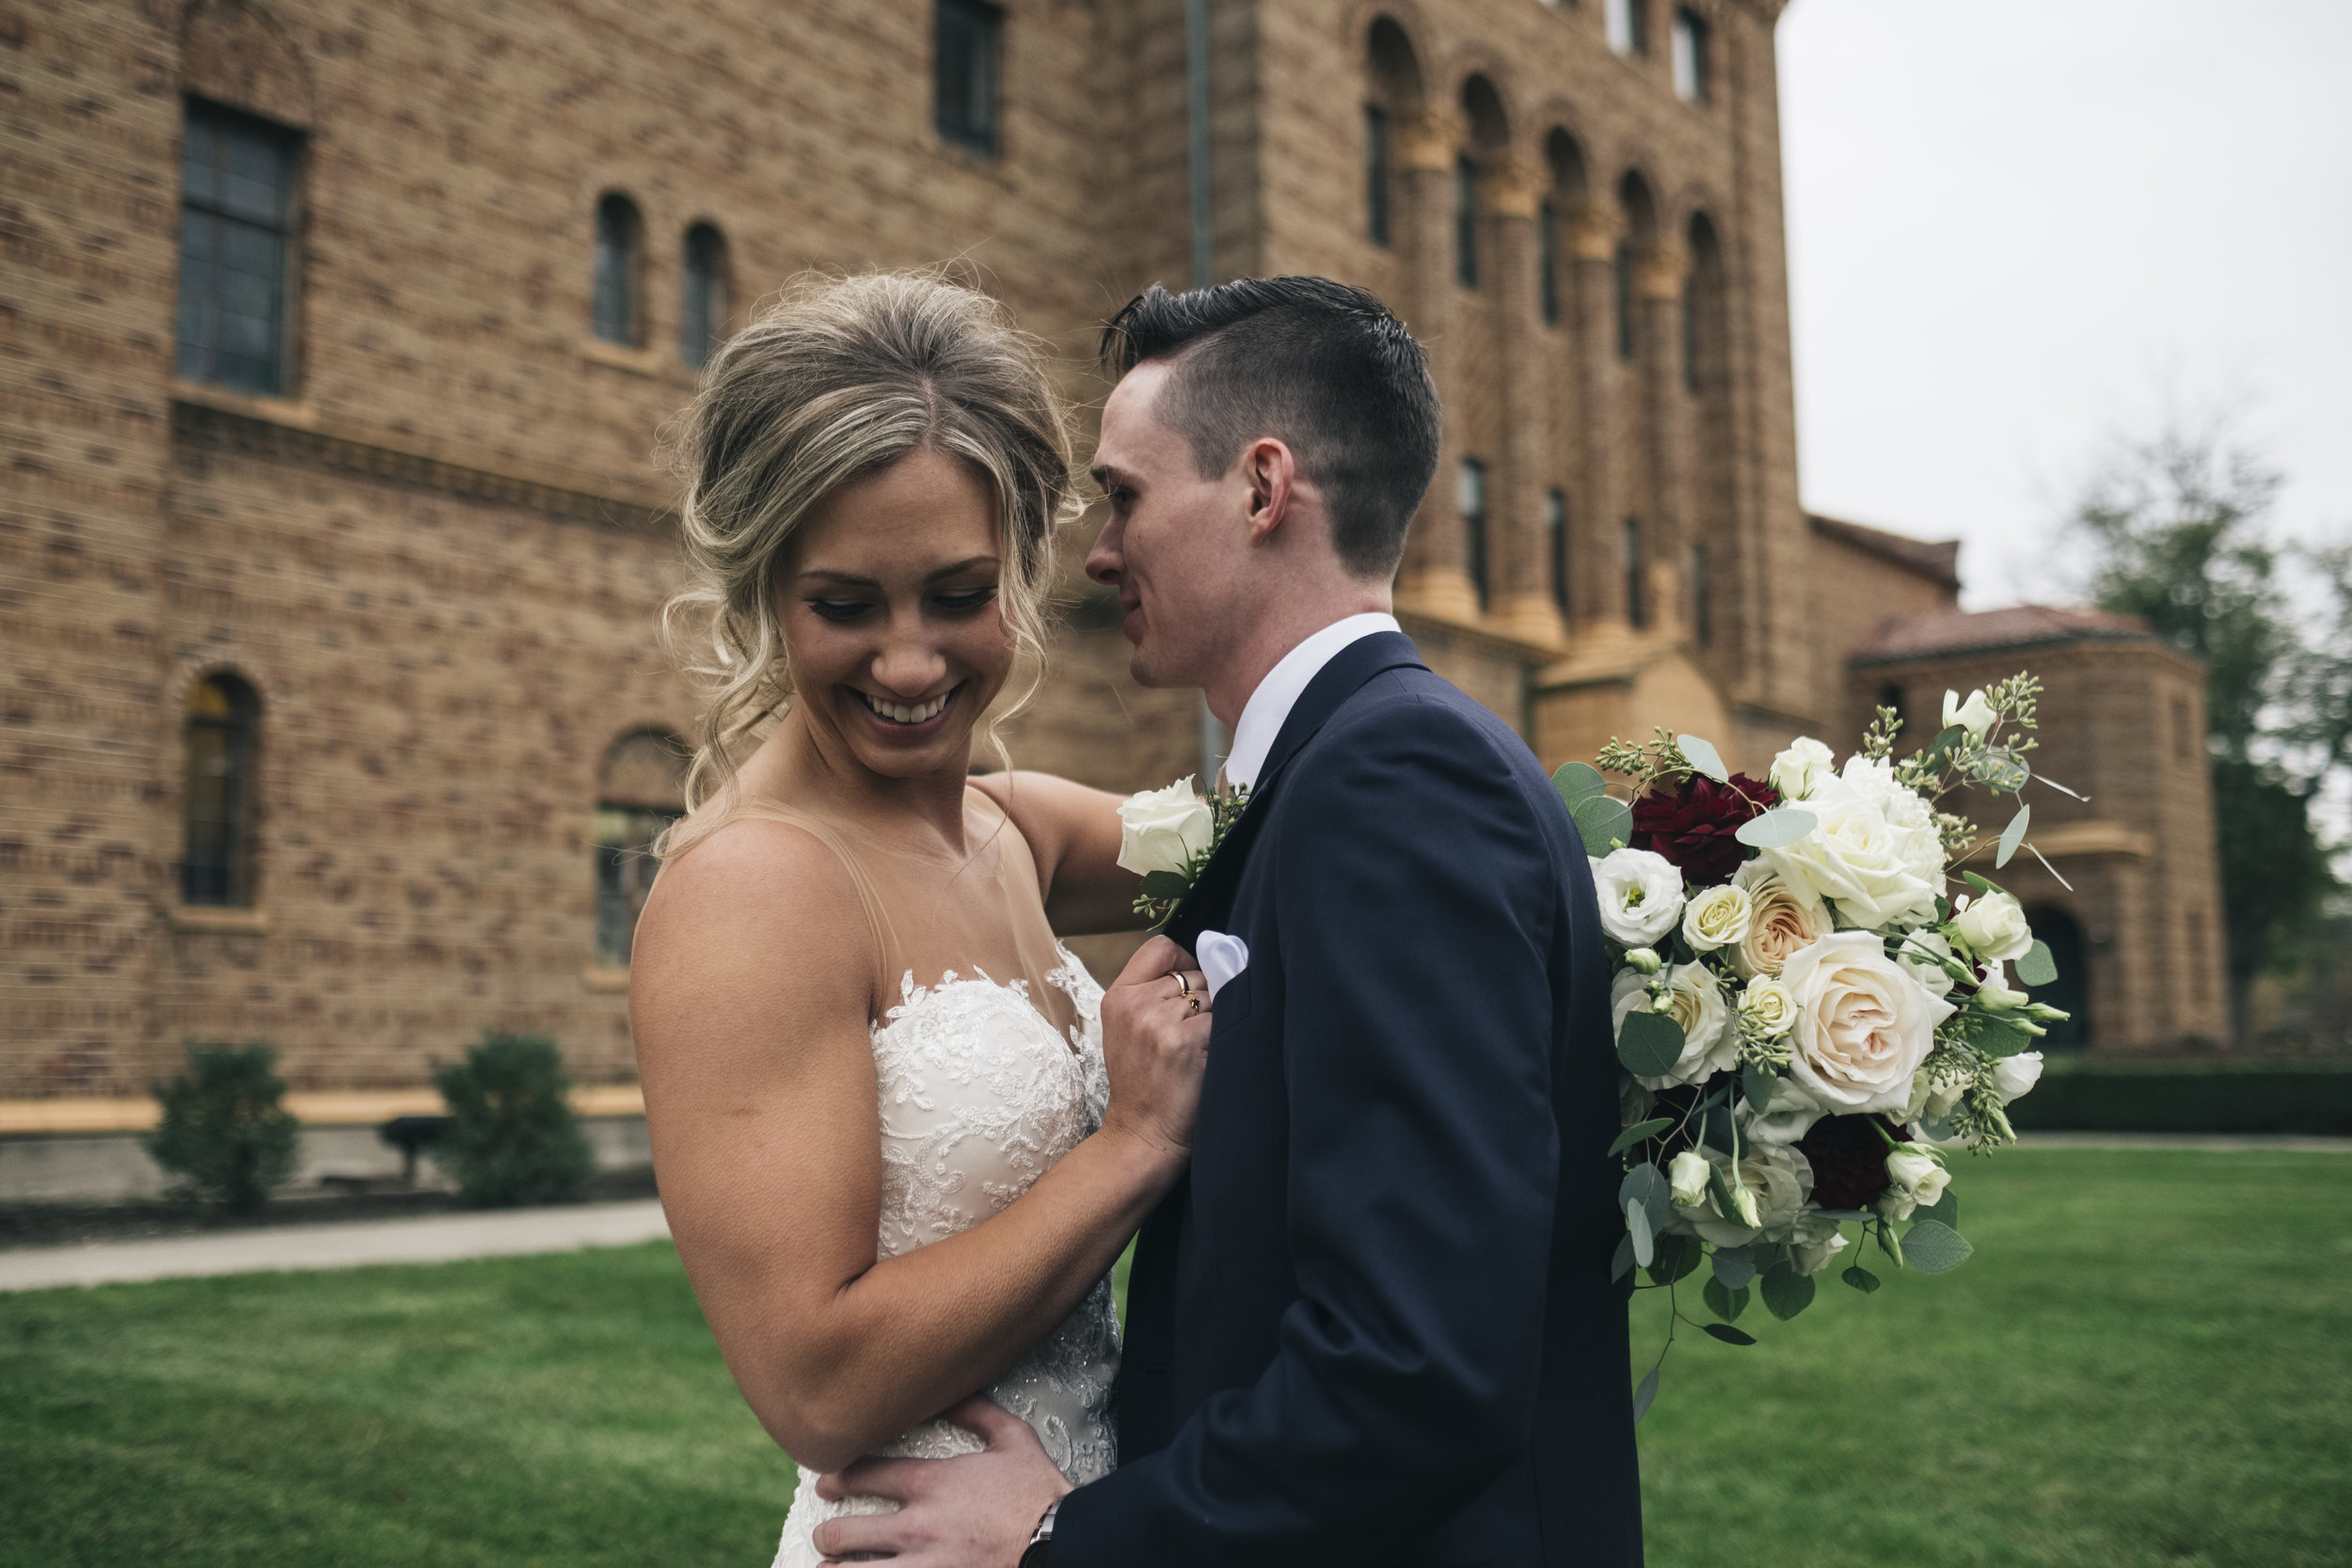 Wedding Photographers from Toledo Ohio and Couple on Wedding Day Sharing First Look Experience Before Ceremony